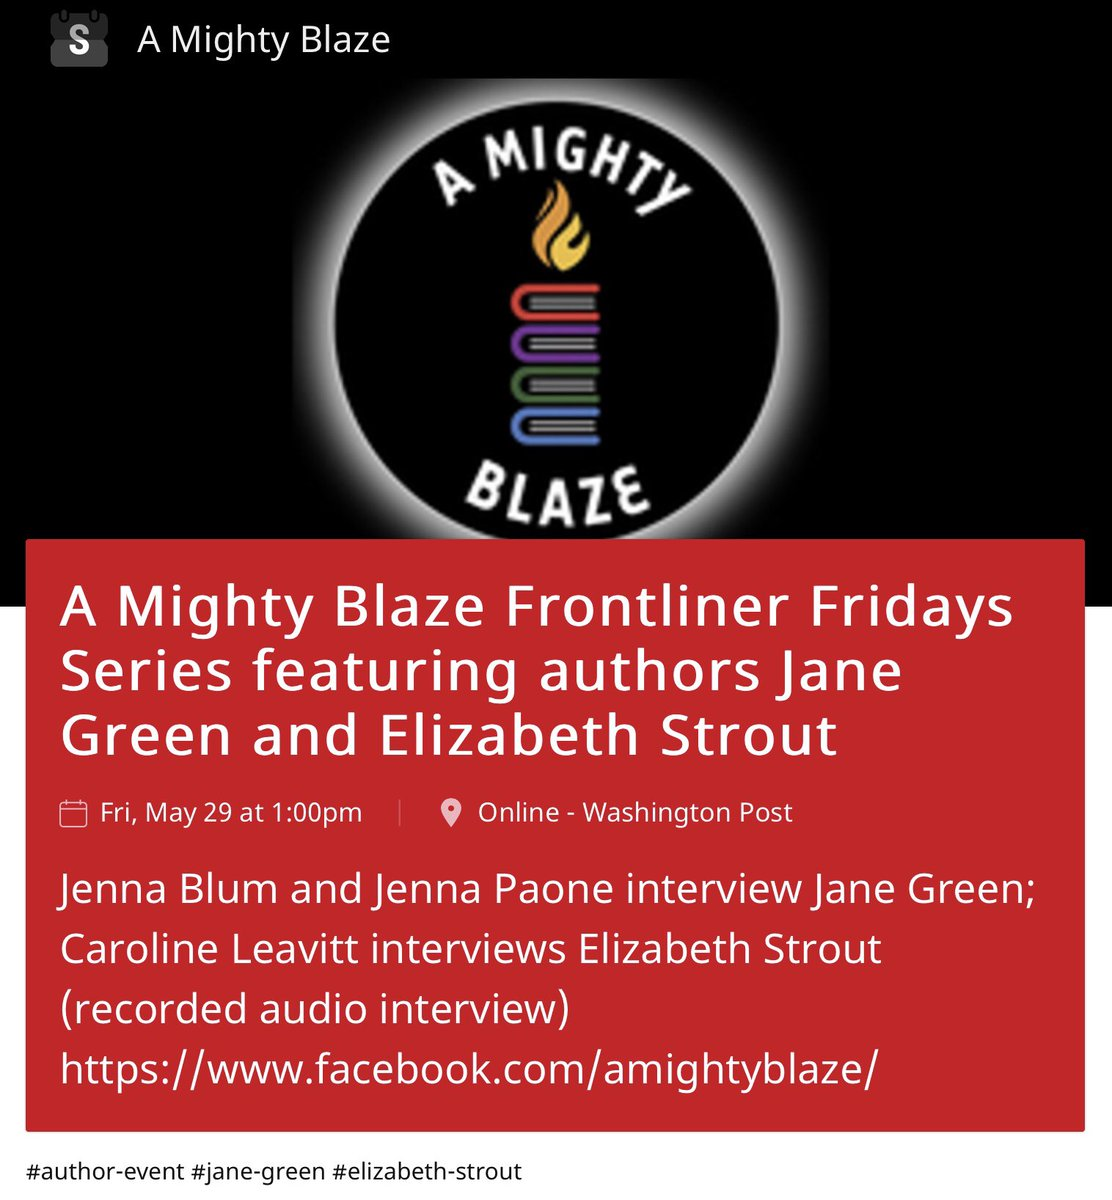 Much obliged to our friends at @washingtonpost for this shout out of FRI 5/29 #FrontlinerFriday events! @JaneGreen 1PM ET ⭐️ #ElizabethStrout 4PM ET for our special #Pulitzer Podcast. Both on Blaze Facebook page. INFO: https://t.co/mgHabcZlcC https://t.co/CFc2U5ANgr